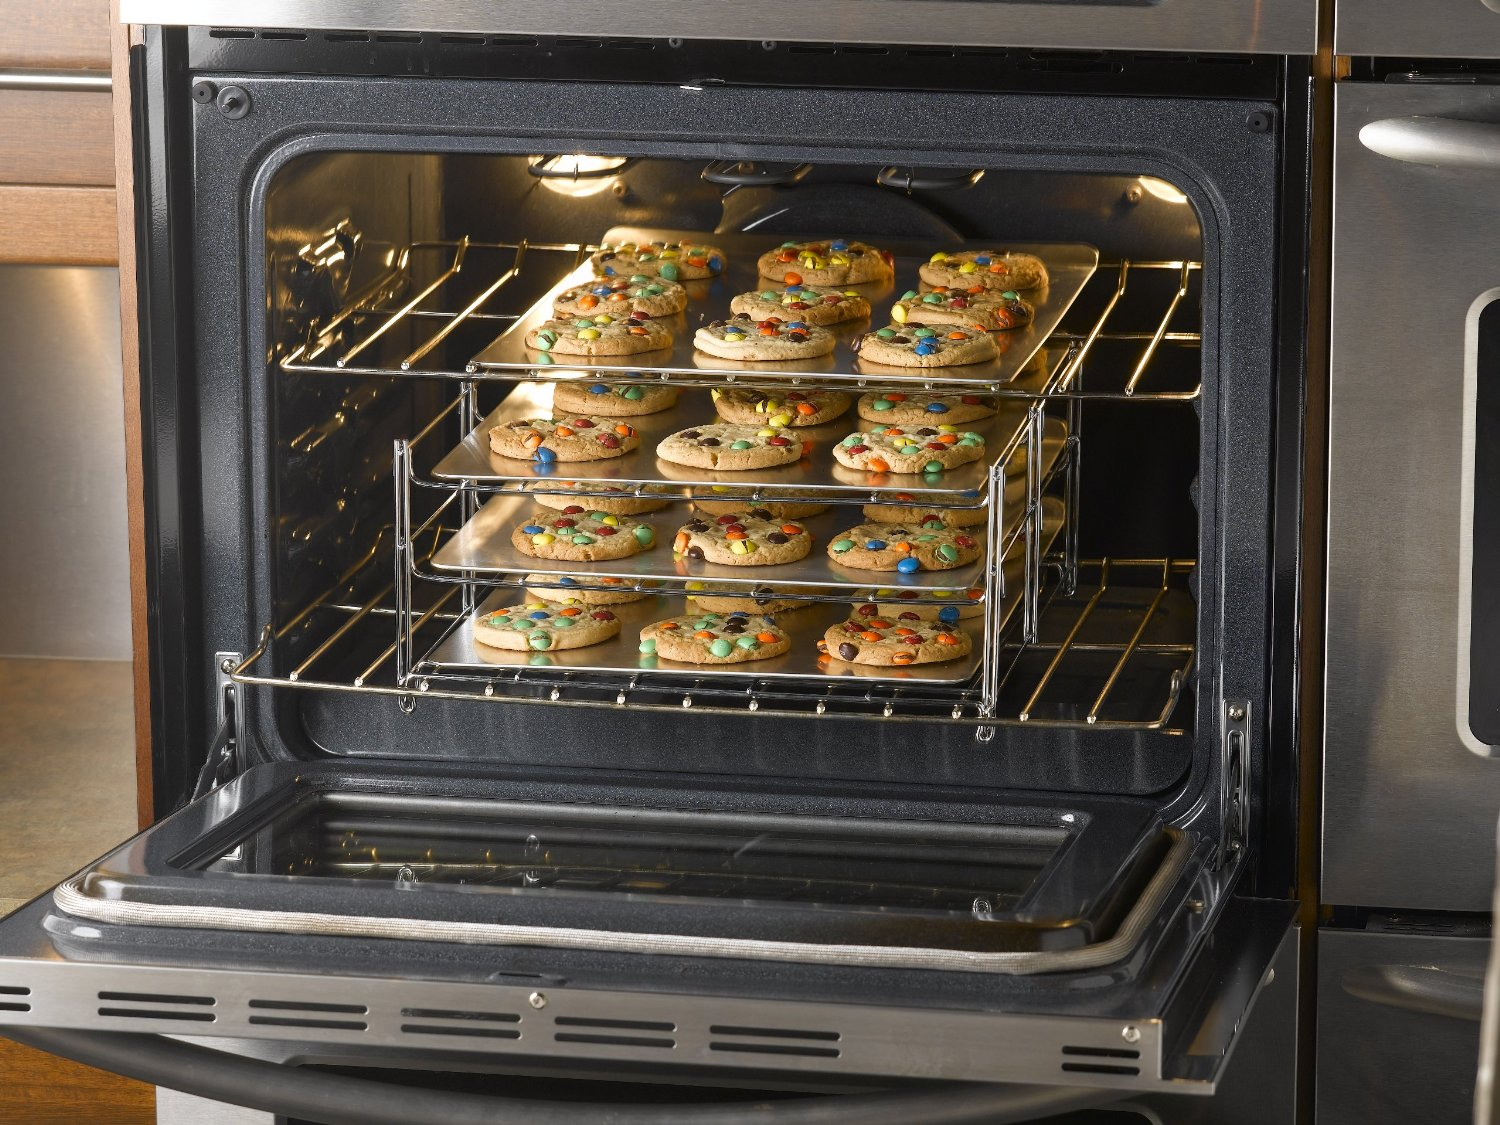 Best Countertop Ovens For Baking Ovens For Baking